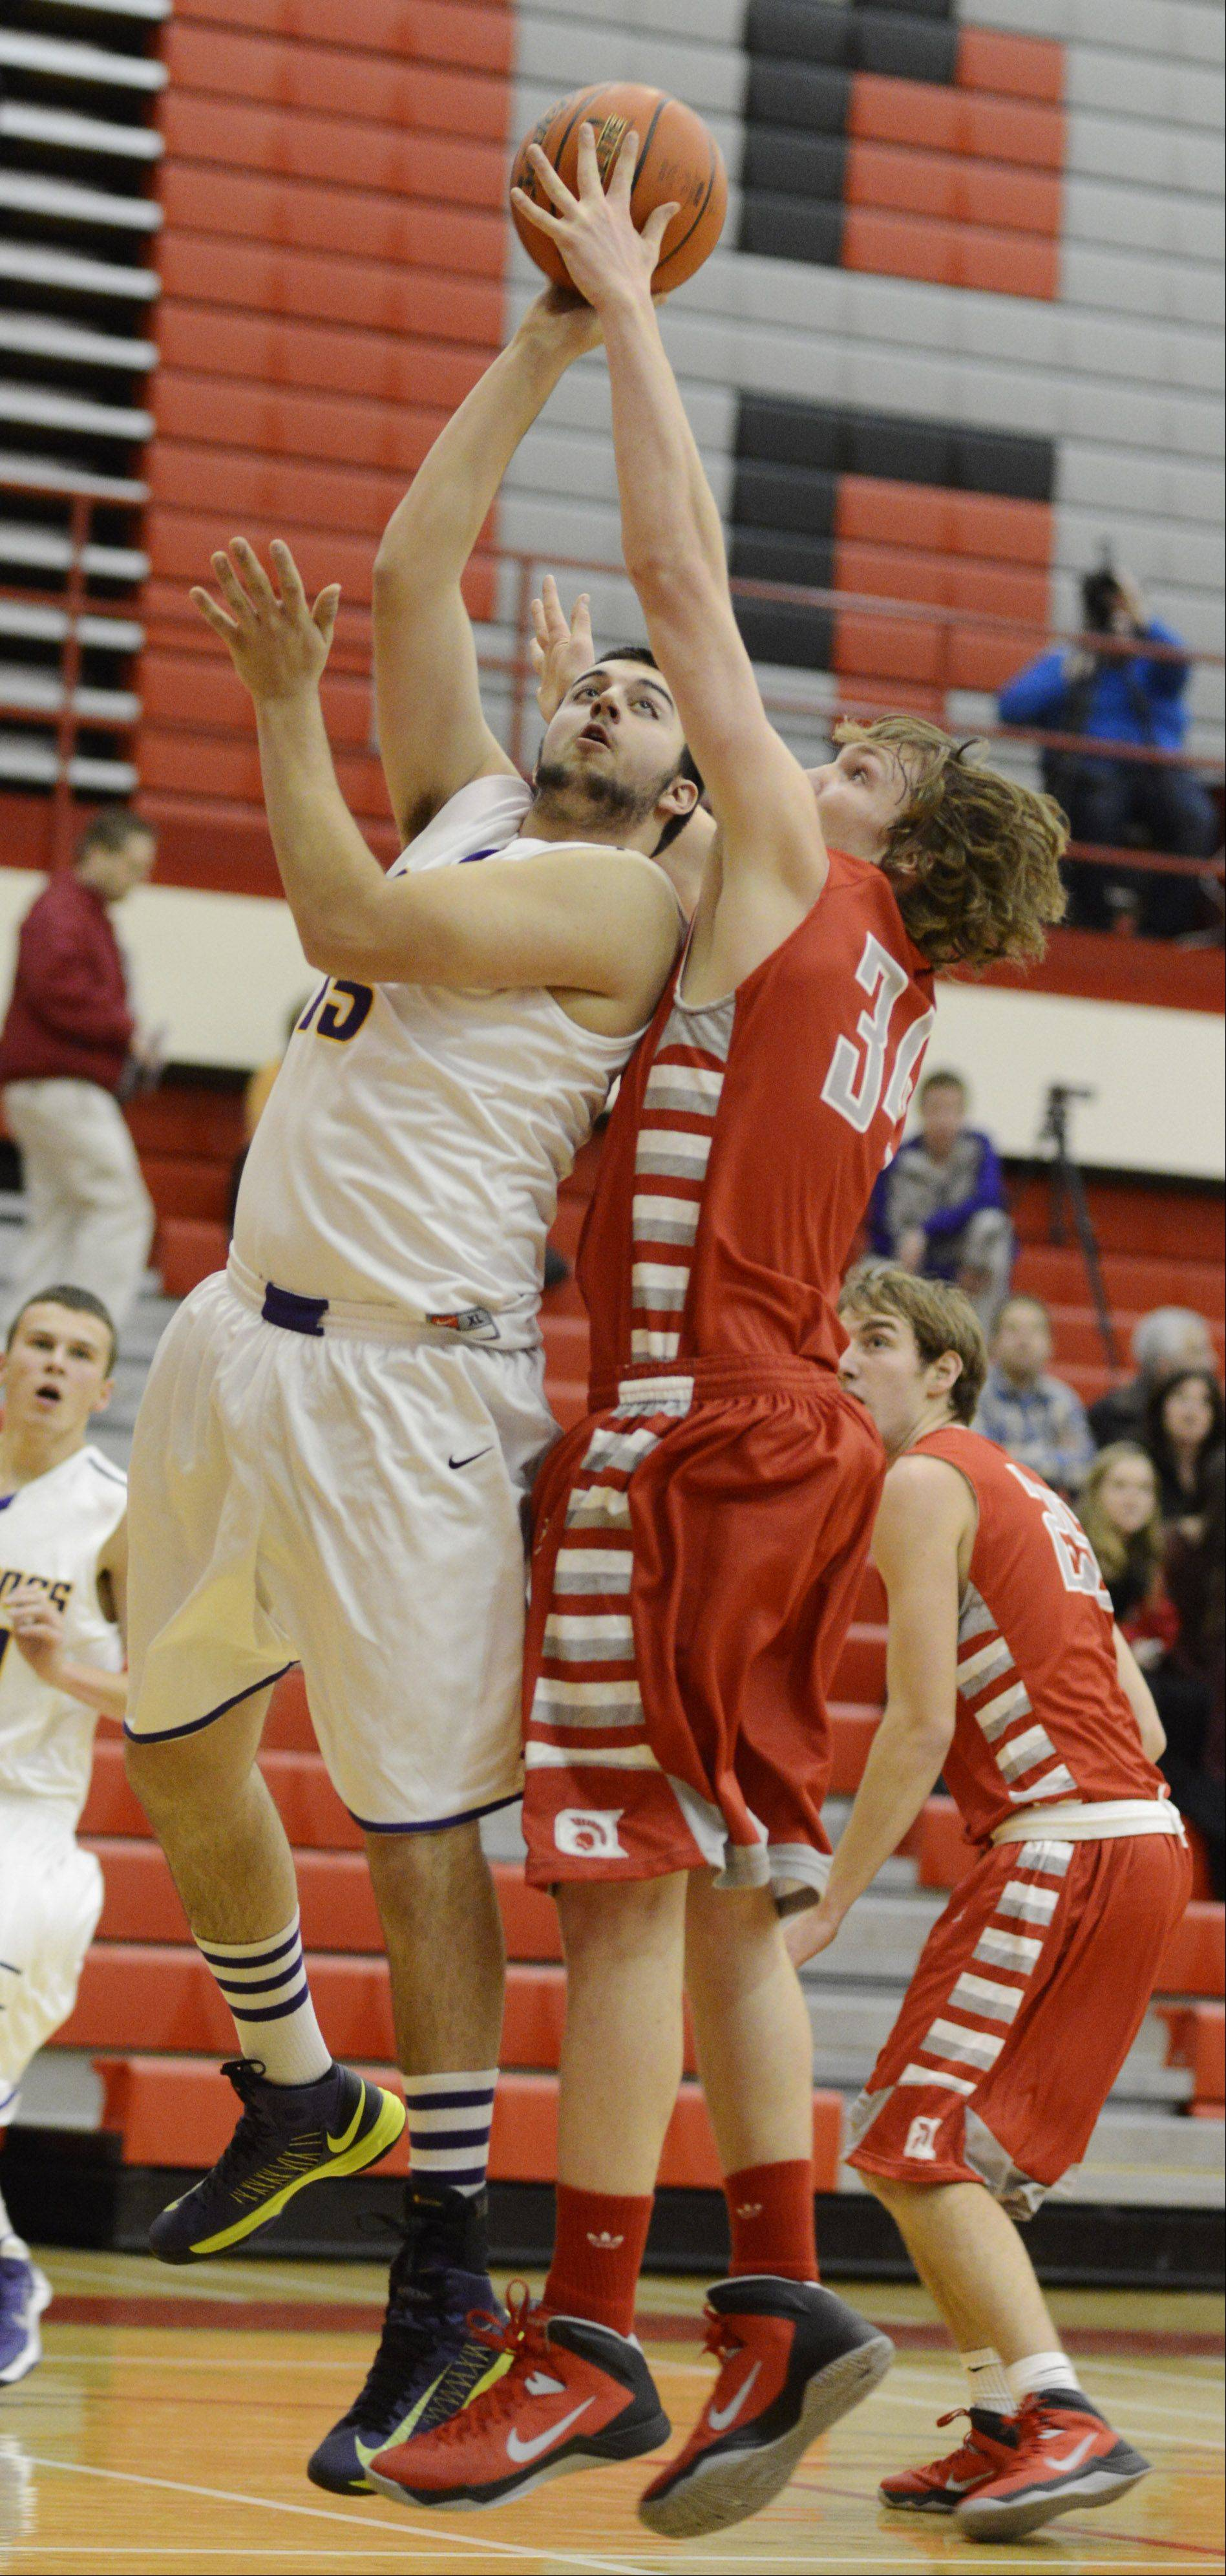 Rolling Meadows' Terry Moran, left, takes a shot against Deerfield's Michael Alfieri during Tuesday's game in Palatine.